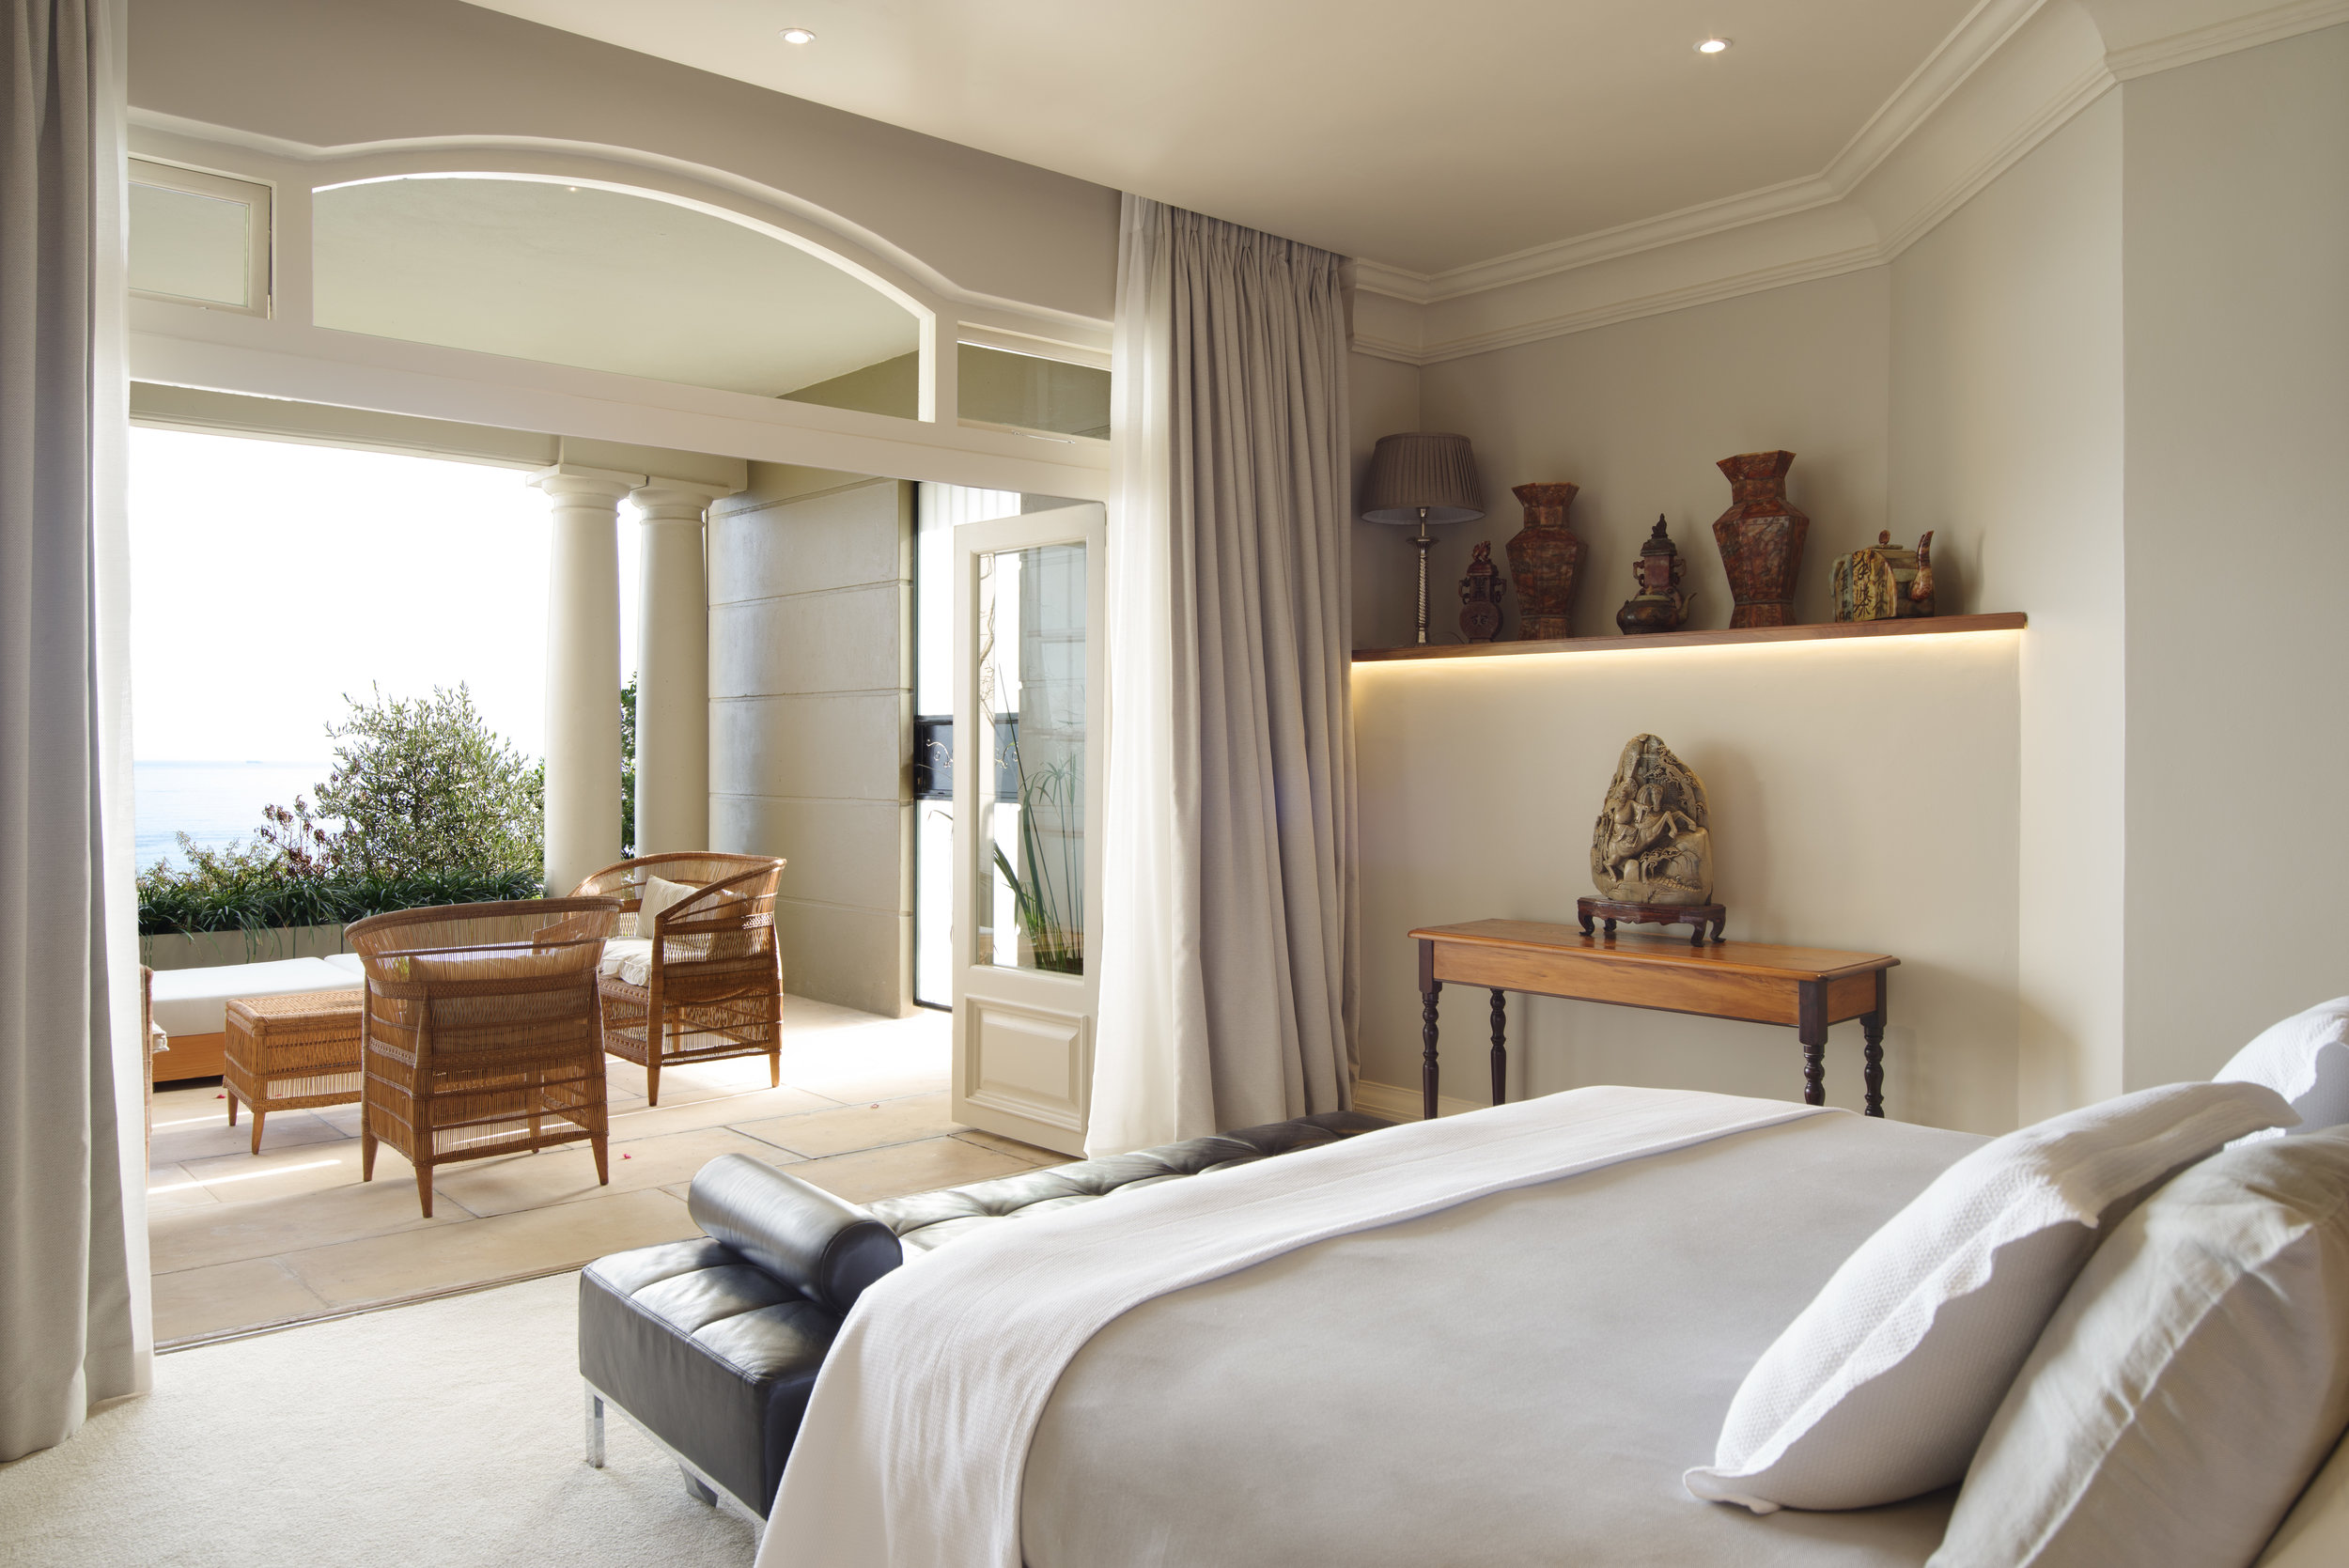 21 Nettleton Emporer Suite dressed in neutral tones looking out onto private balcony